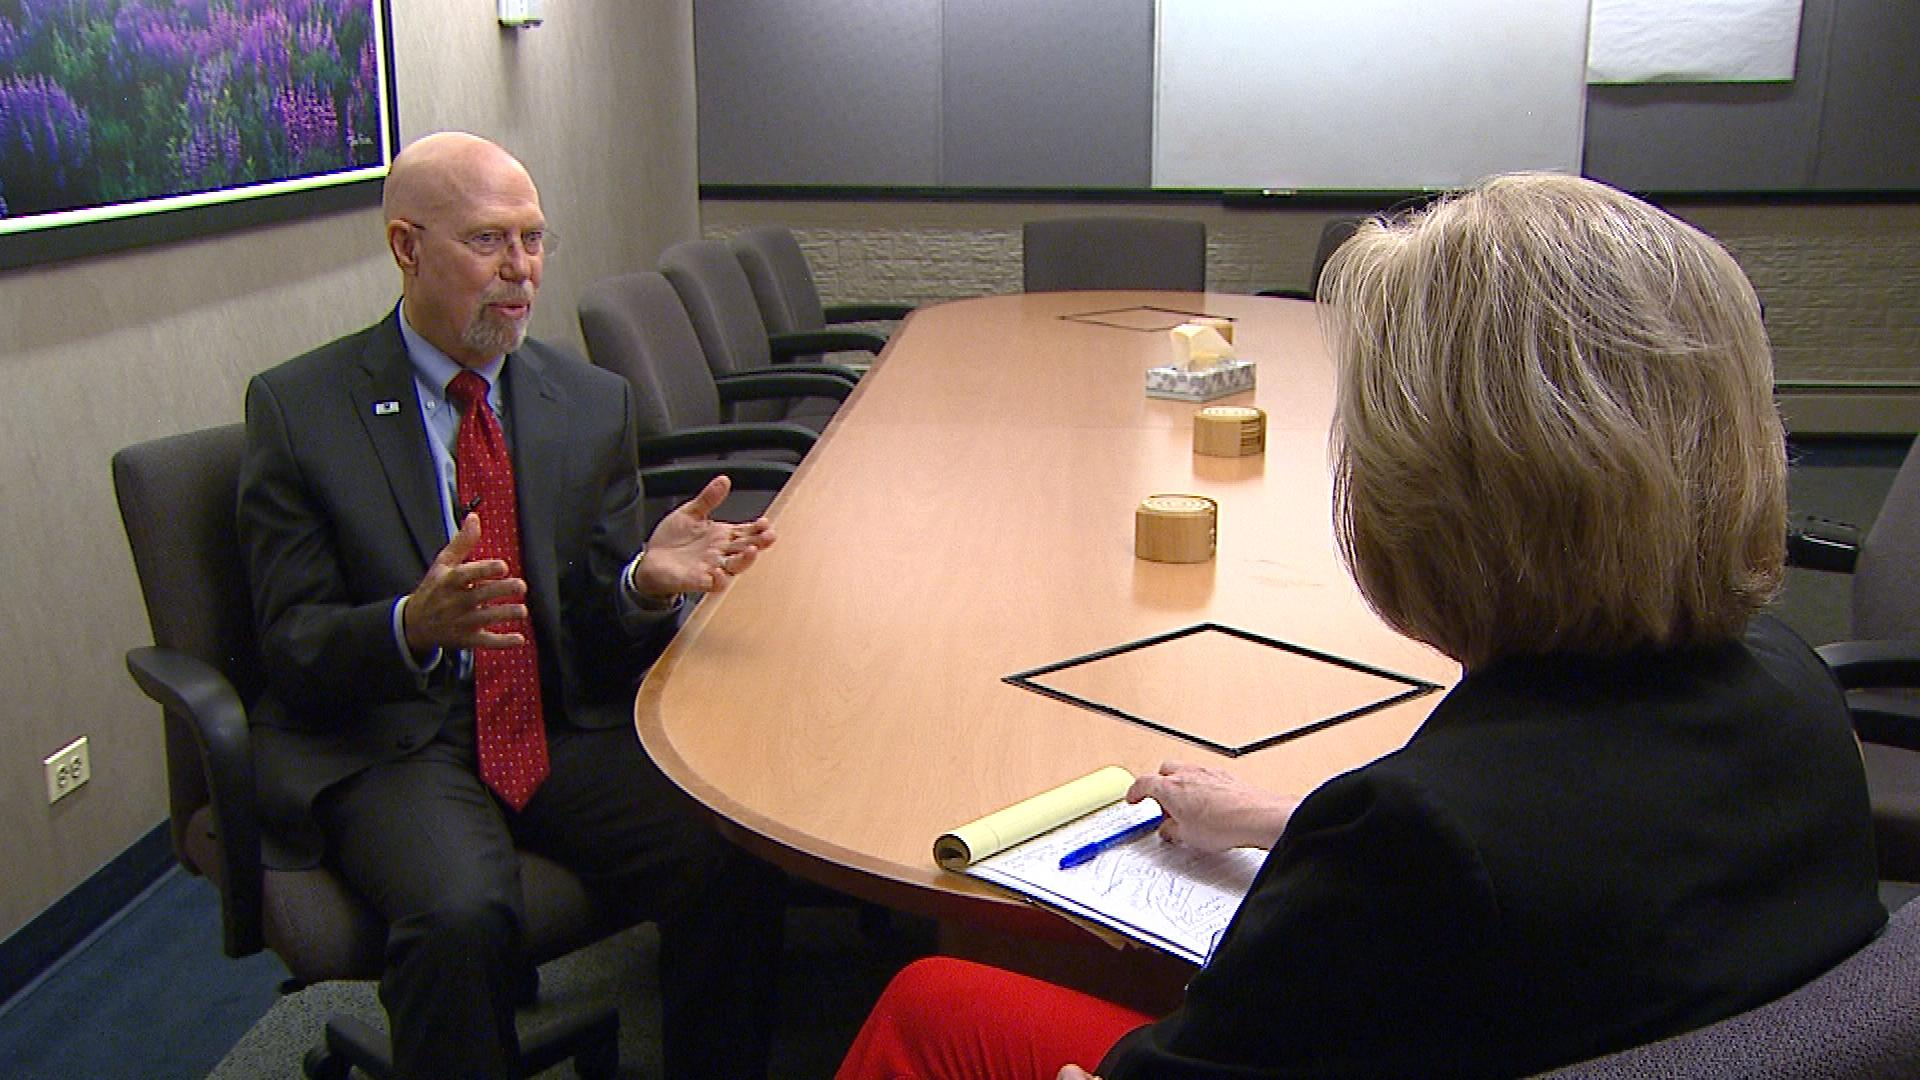 Arthur Schut, President and CEO of Arapahoe House, talks with CBS4's Kathy Walsh (credit: CBS)